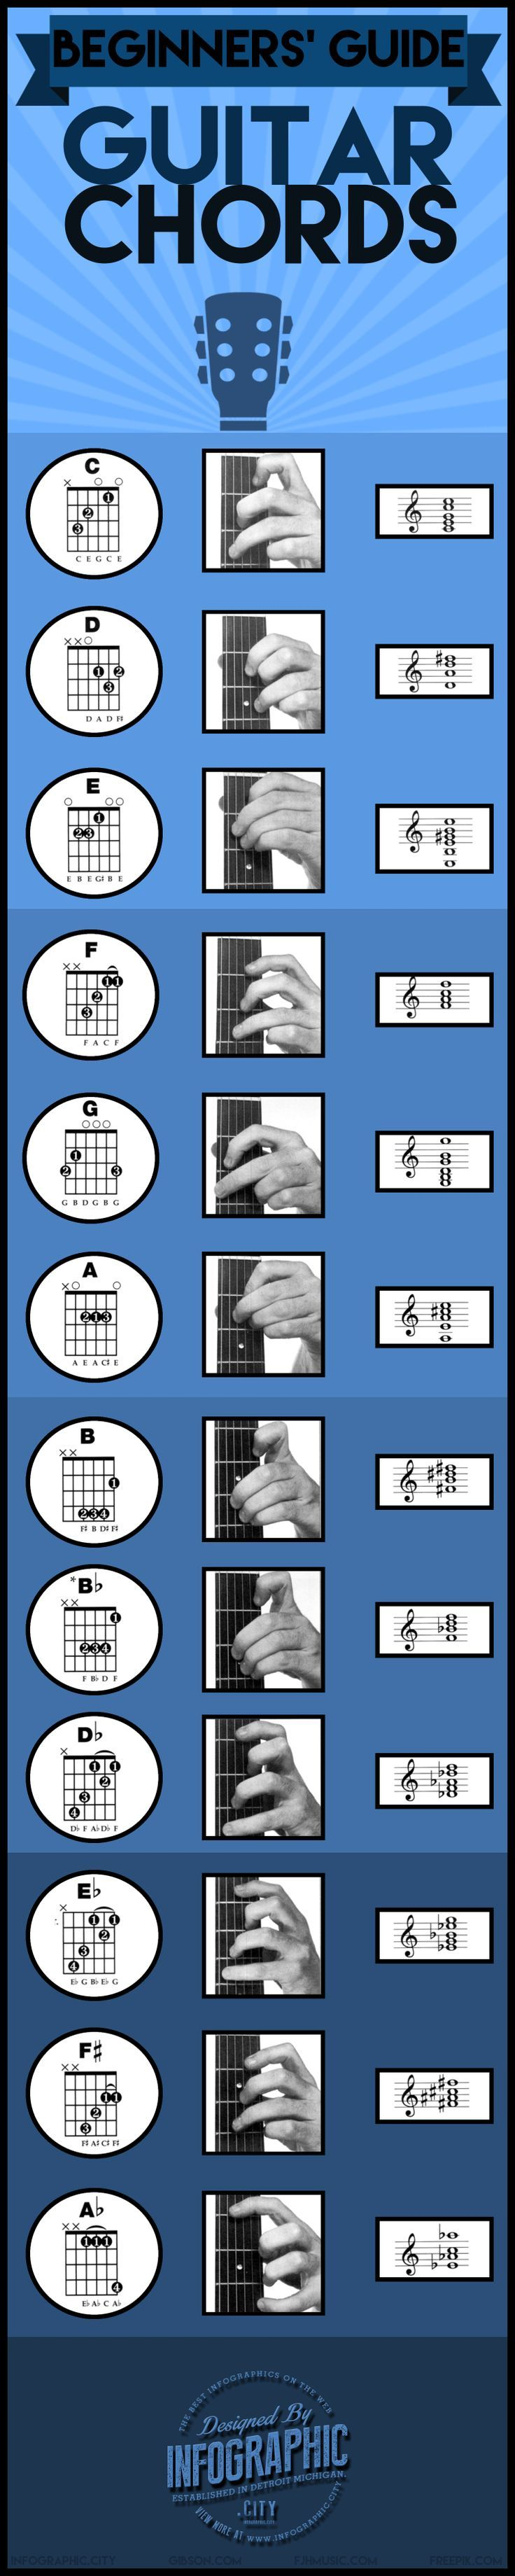 Best 25 em guitar chord ideas on pinterest guitar chords a beginners guide to guitar chords infographic hexwebz Image collections